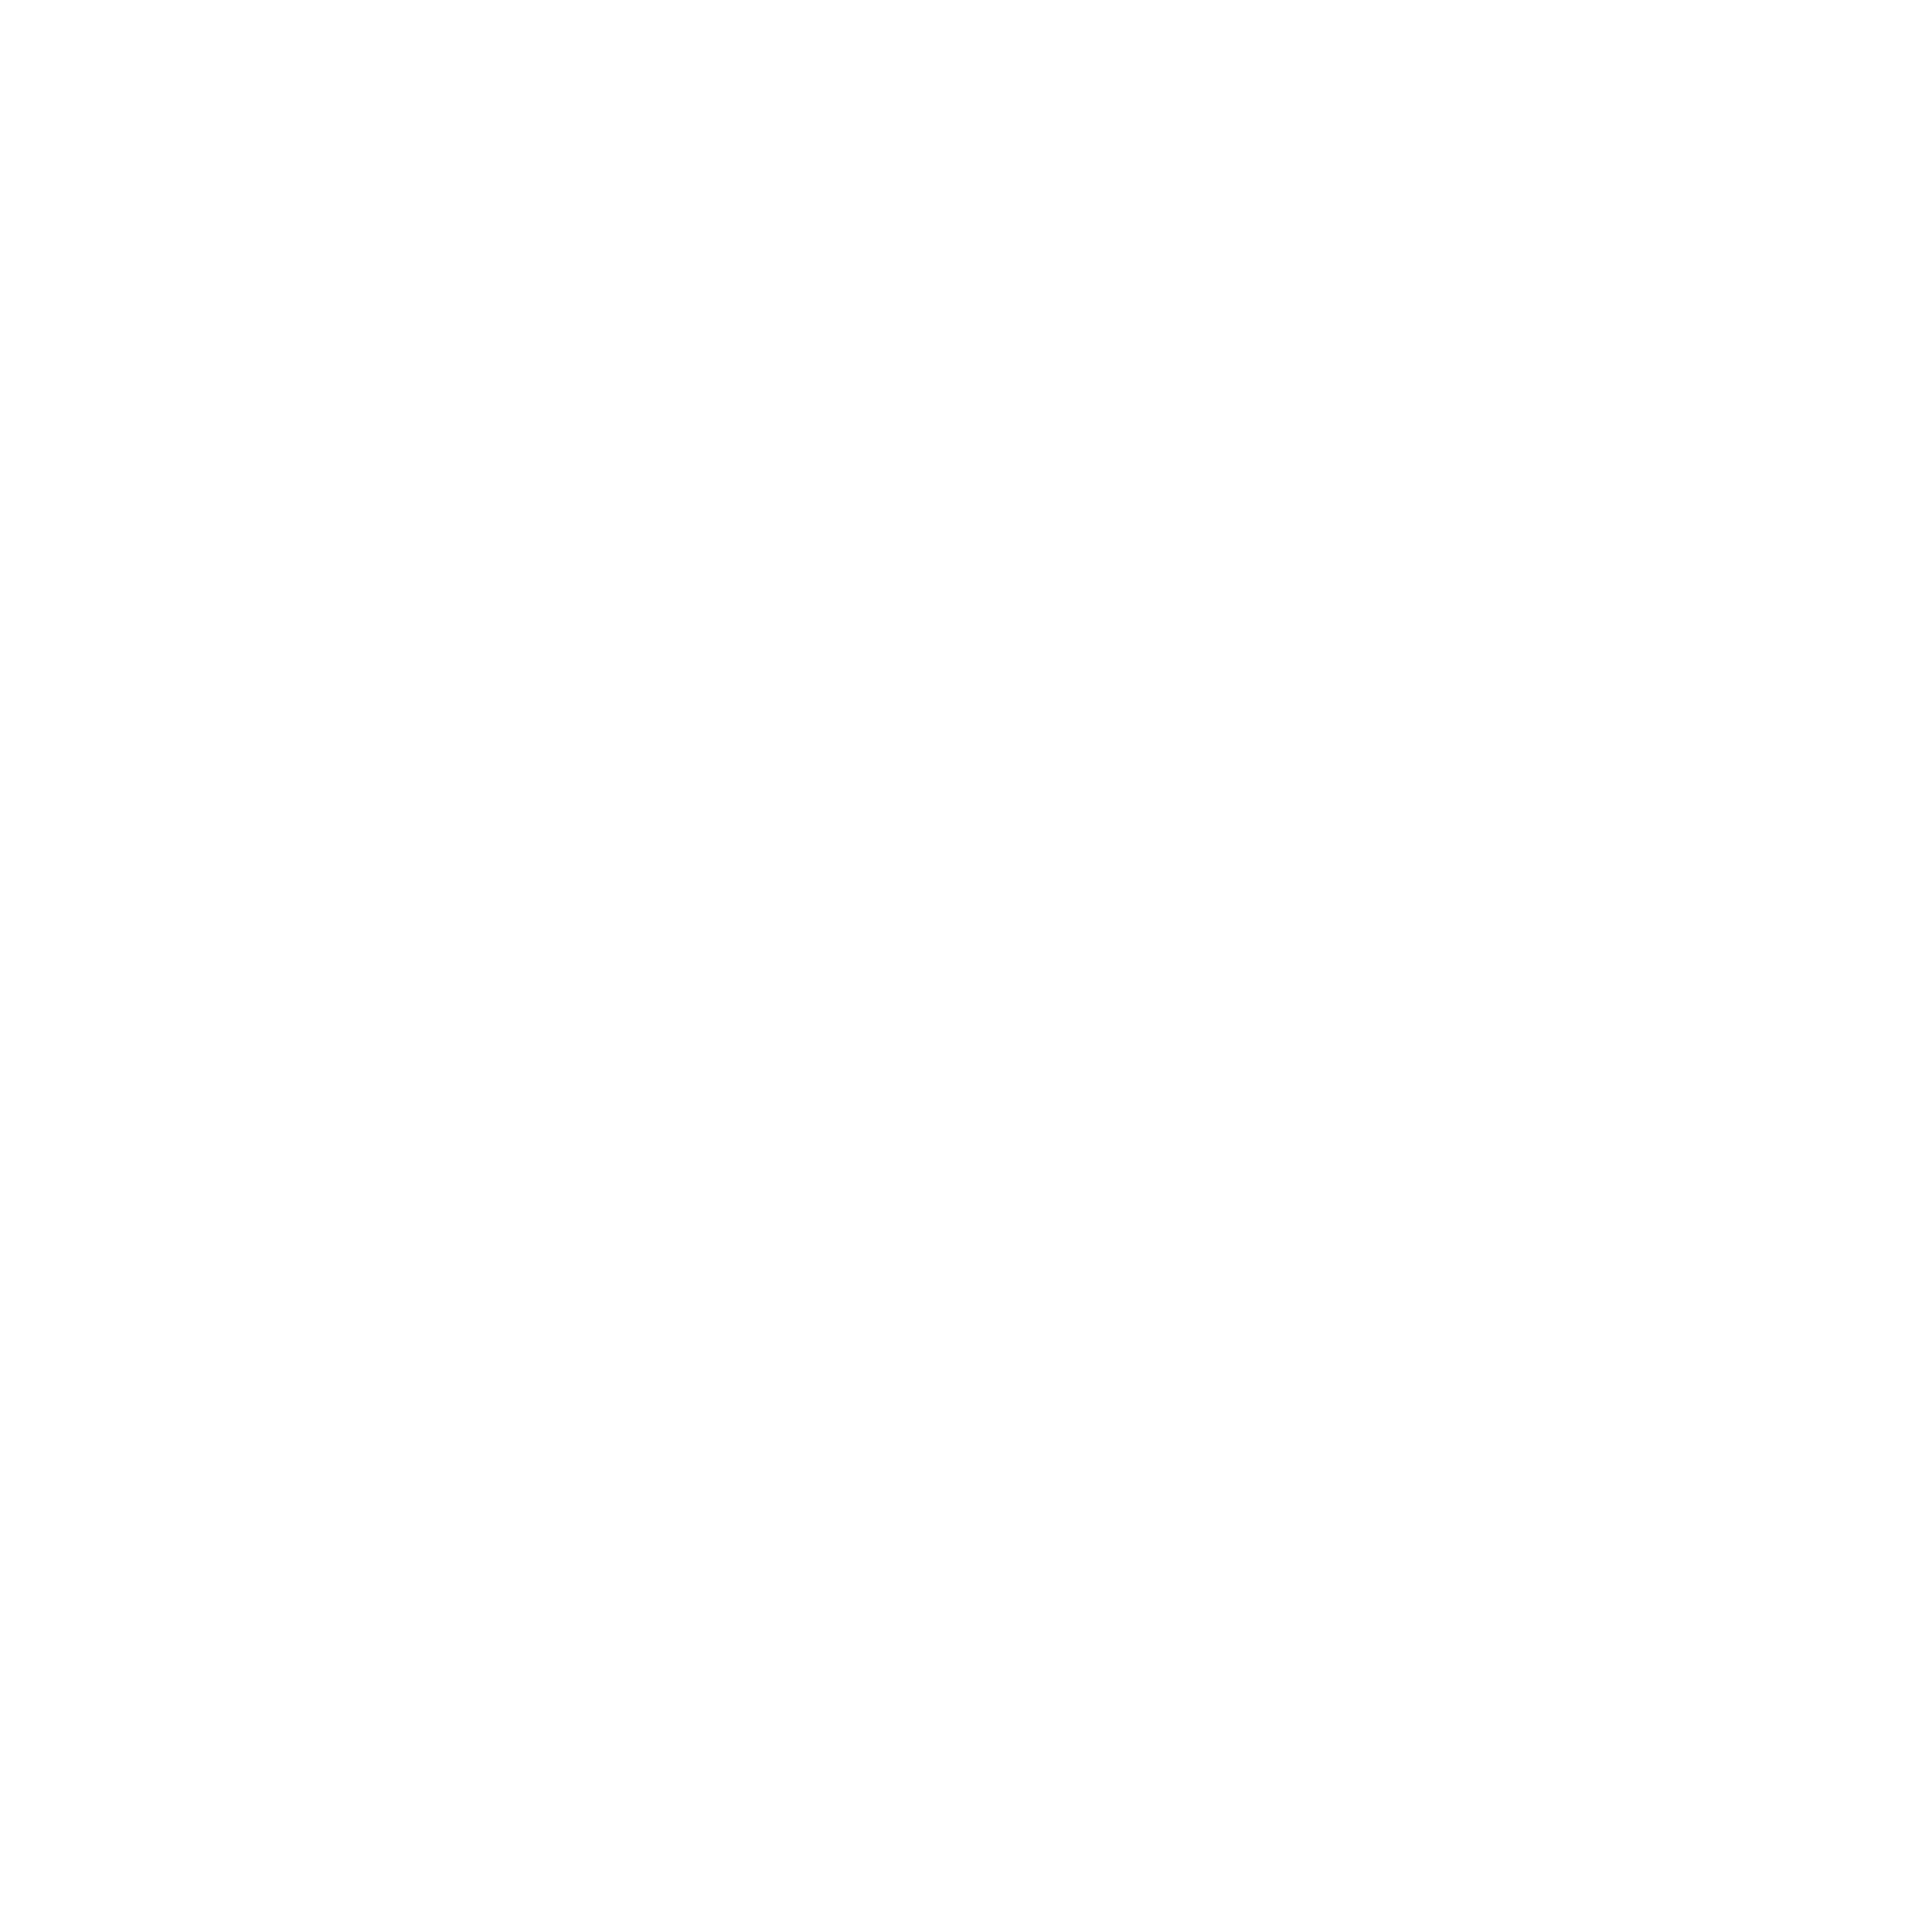 Classic Love Songs - Download only | Jim and Melissa Brady